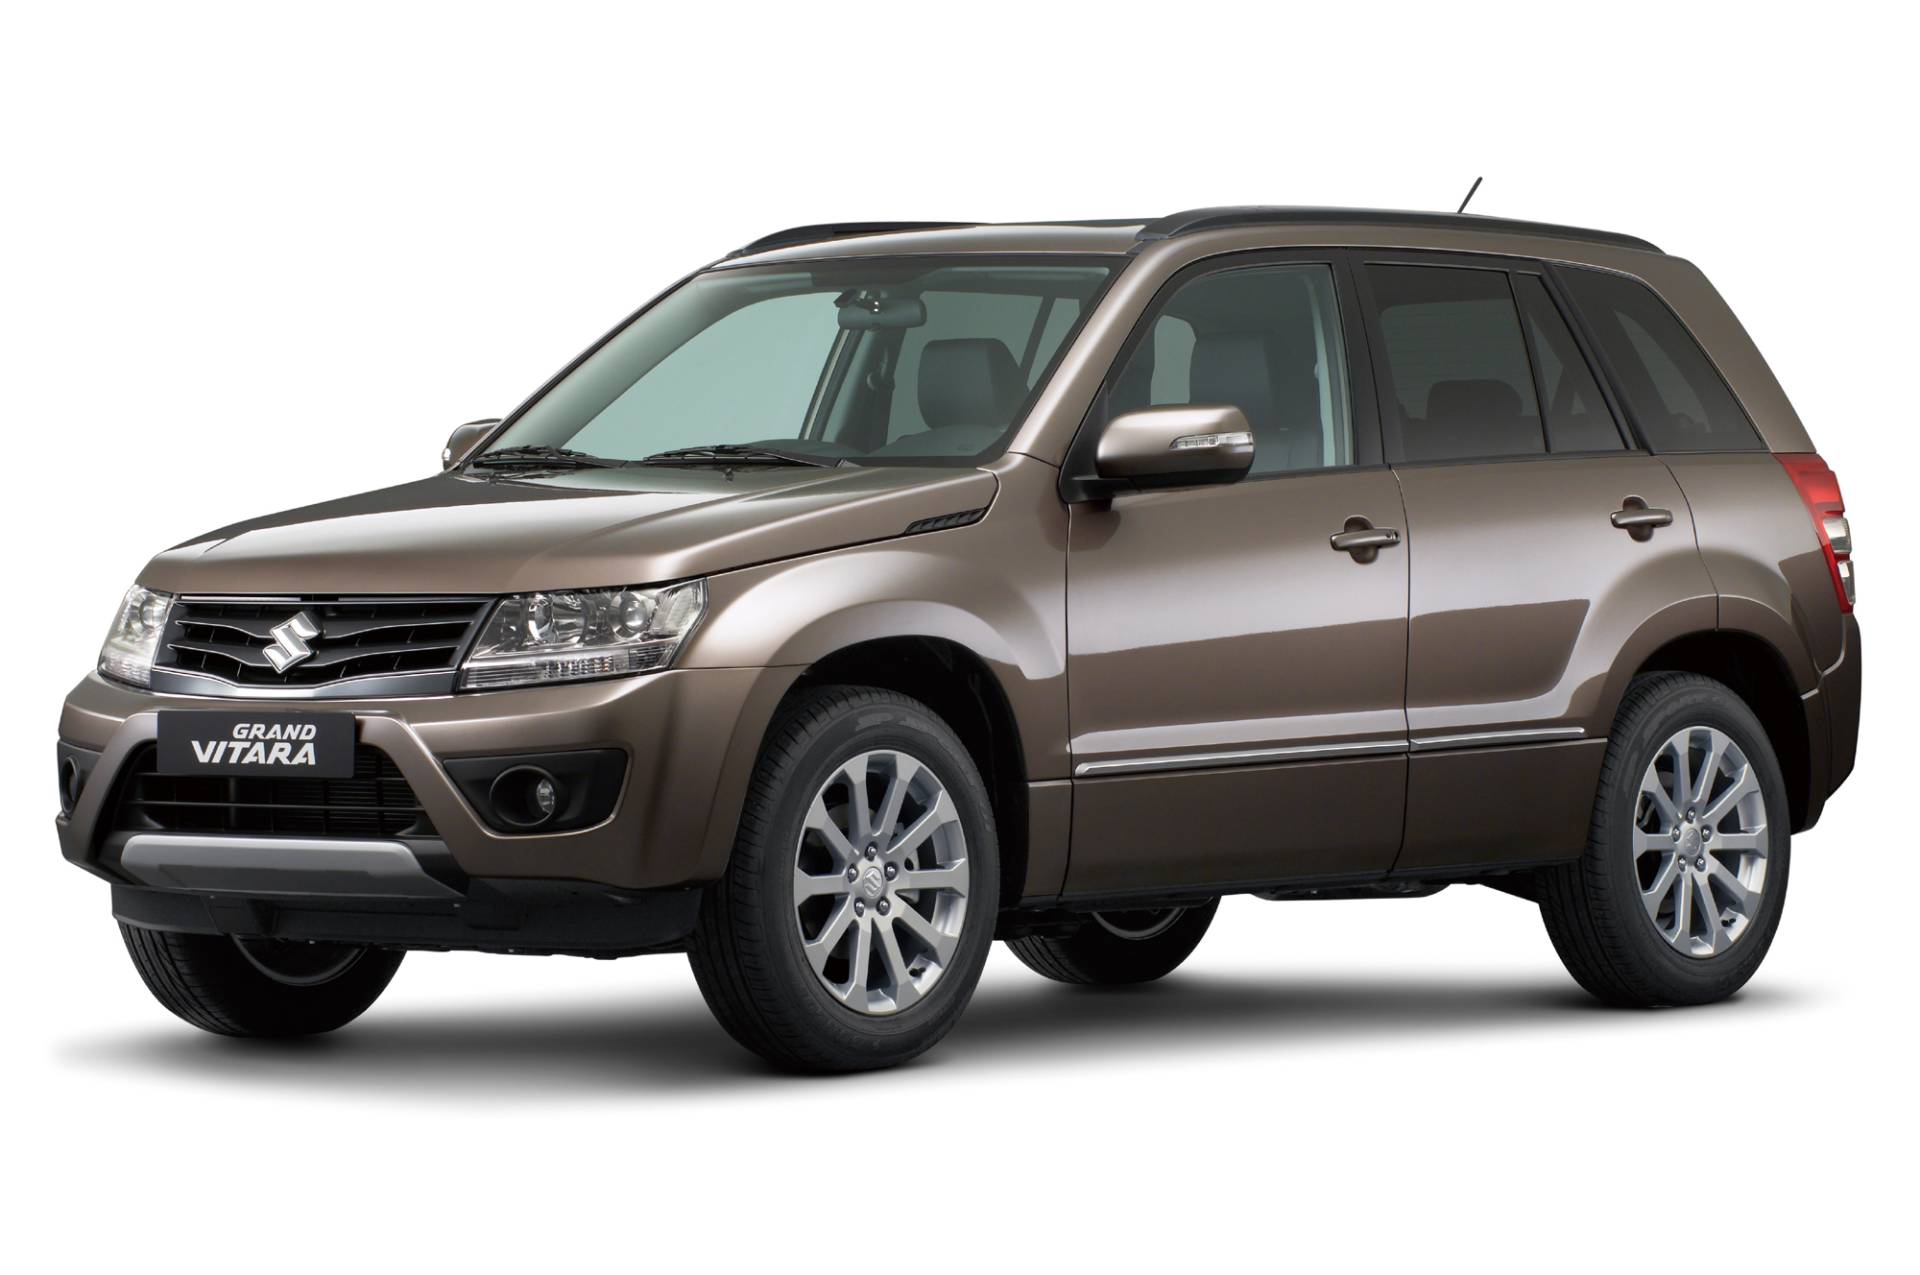 Pics photos 2013 suzuki grand vitara pictures - 2013 Suzuki Grand Vitara Technical Specifications And Data Engine Dimensions And Mechanical Details Conceptcarz Com